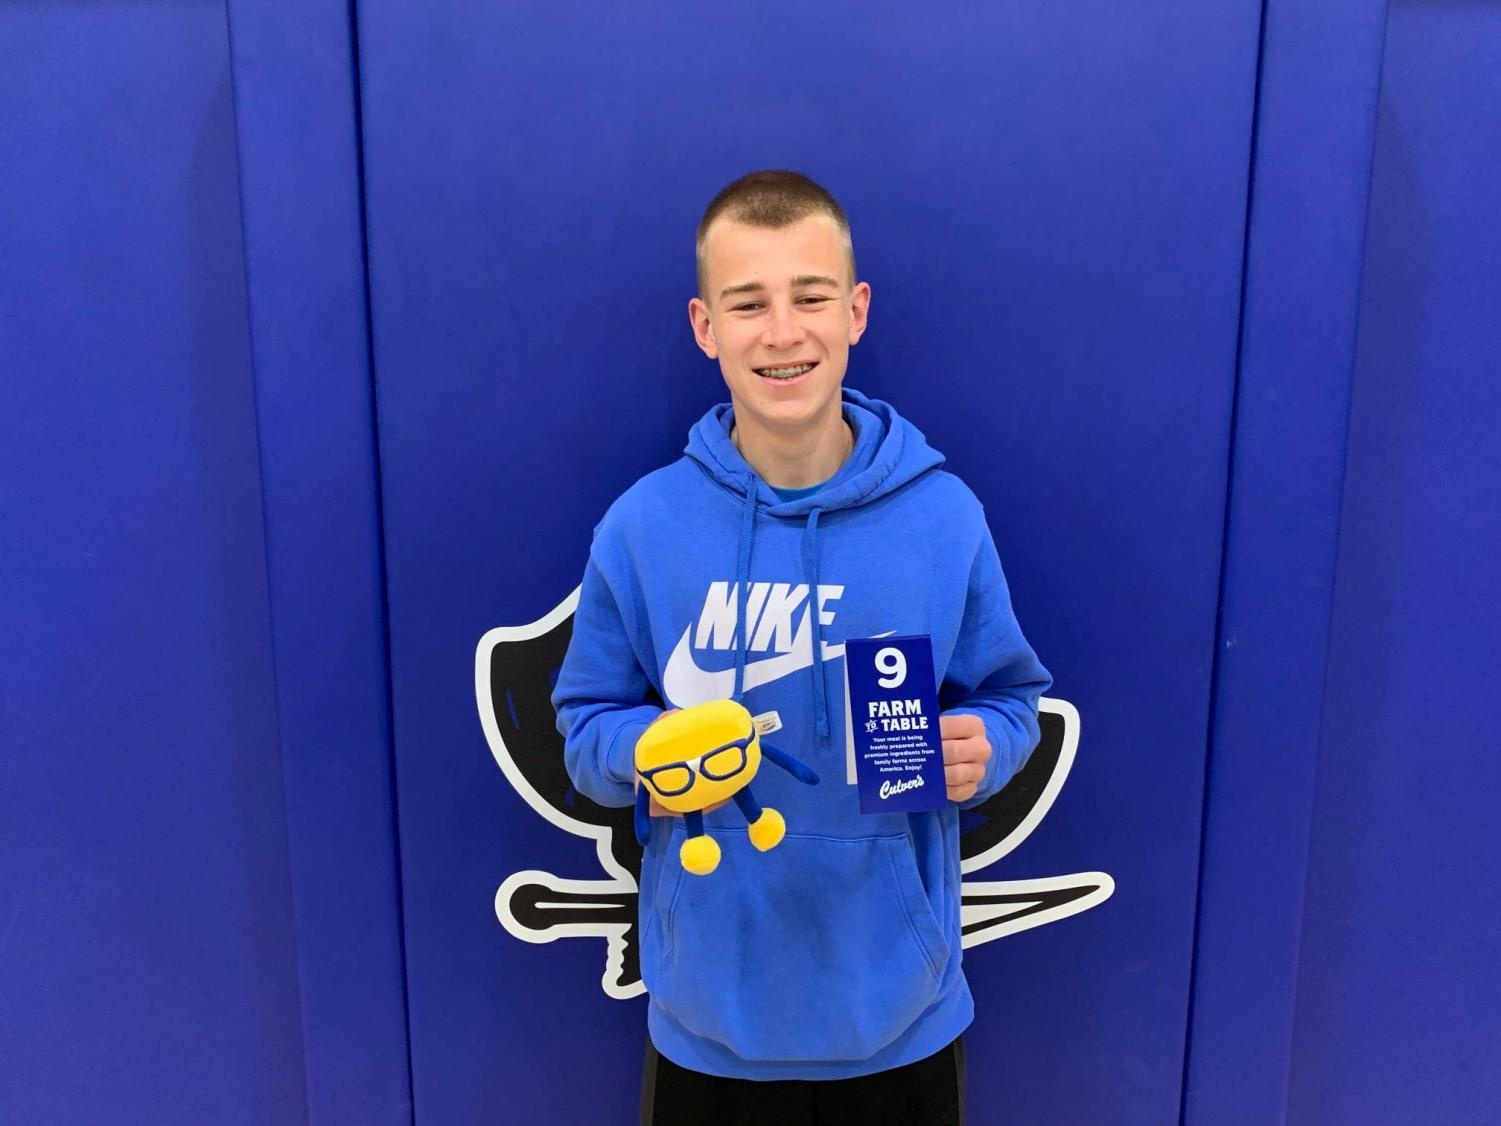 Sam Eaton - Pirate Competitor of the Week